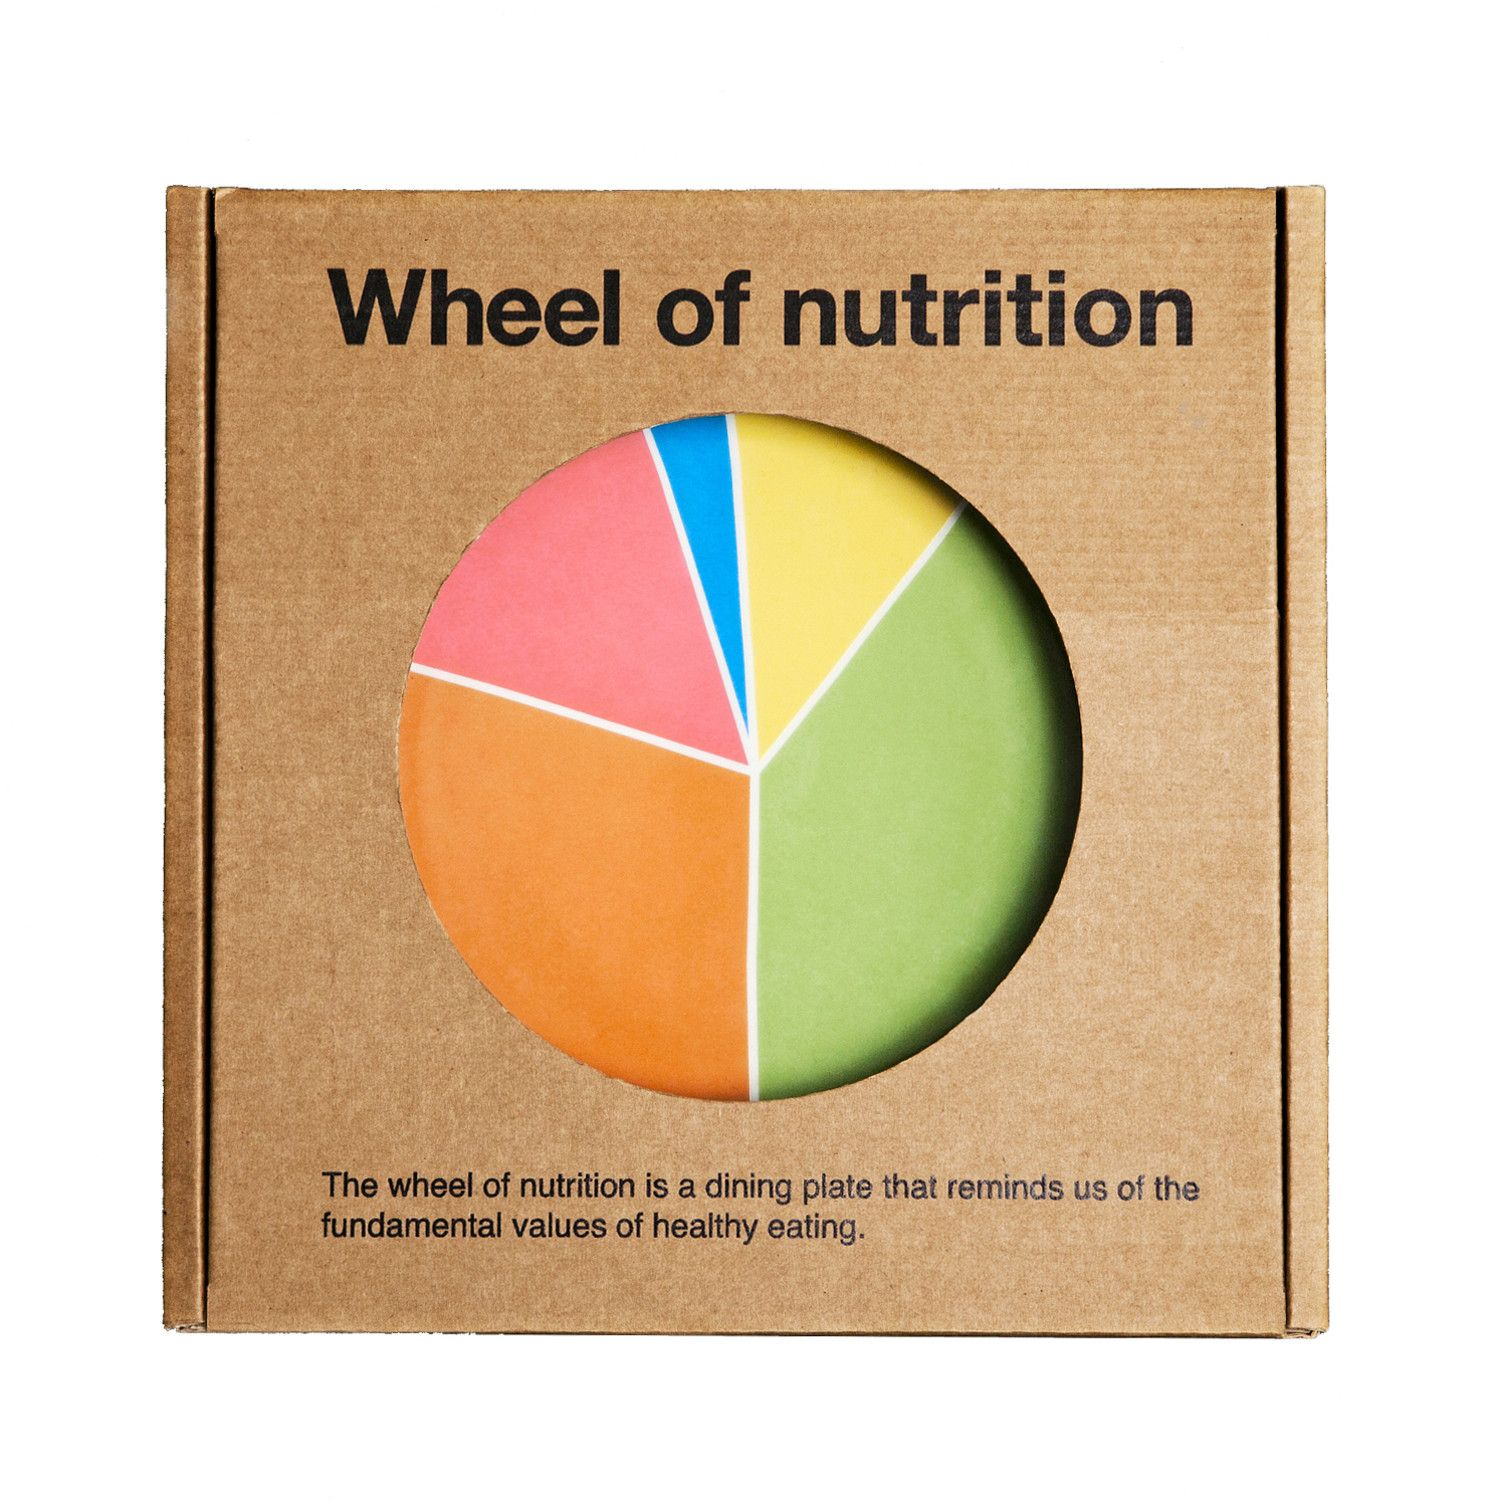 Wheel of nutrition plate - a reminder of what we should be eating.